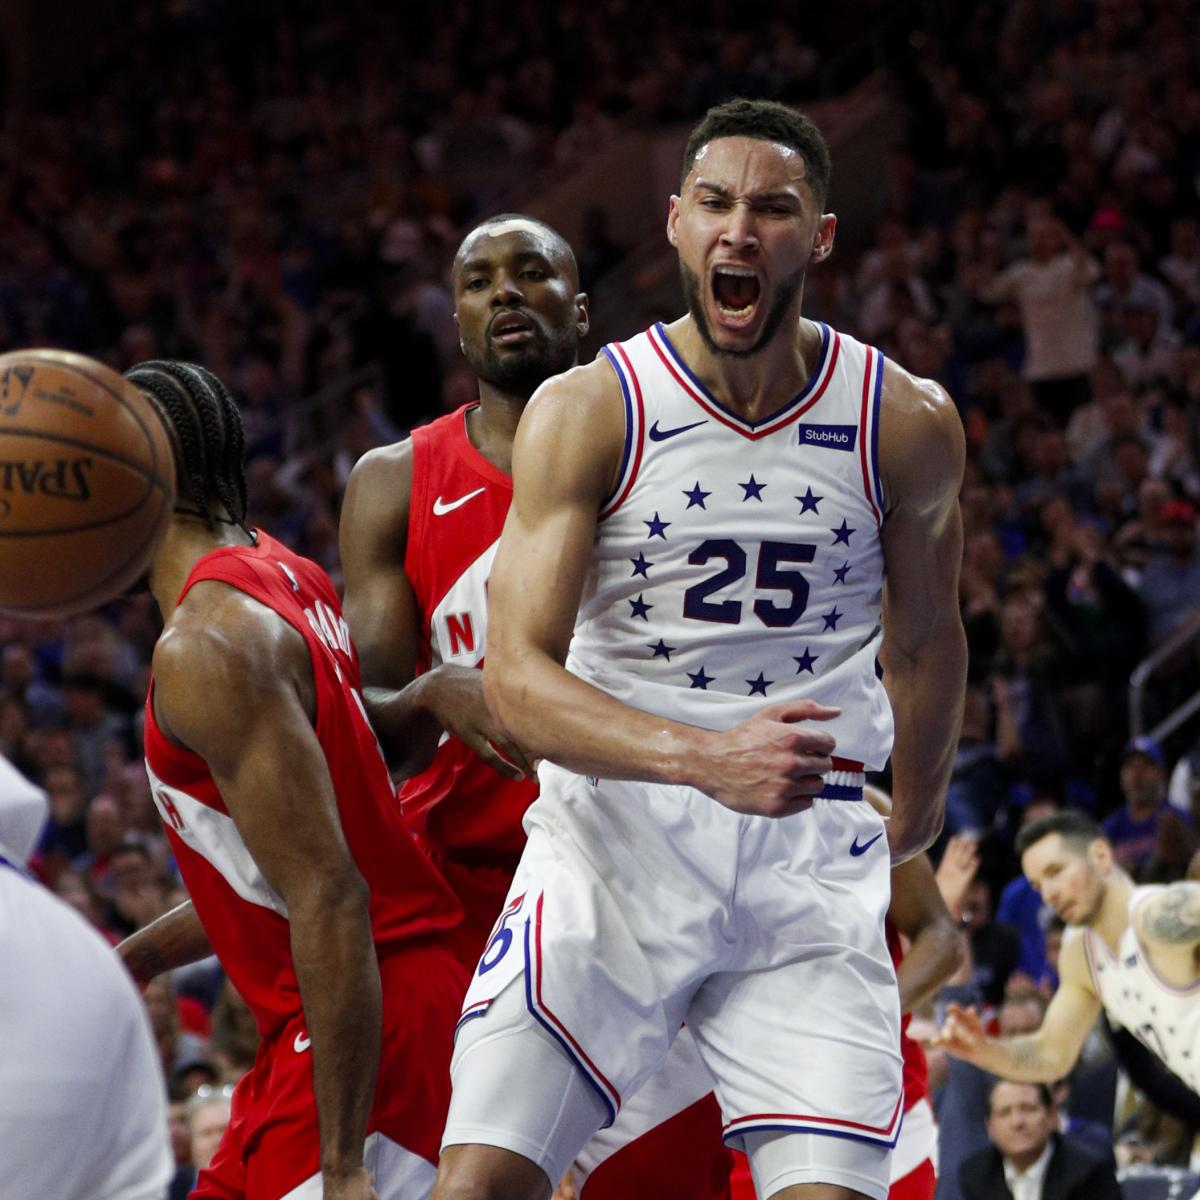 Bleacher Report Nba Staff S 2019 Playoff Predictions: NBA Playoffs 2019: TV Info, Predictions For All Of Sunday